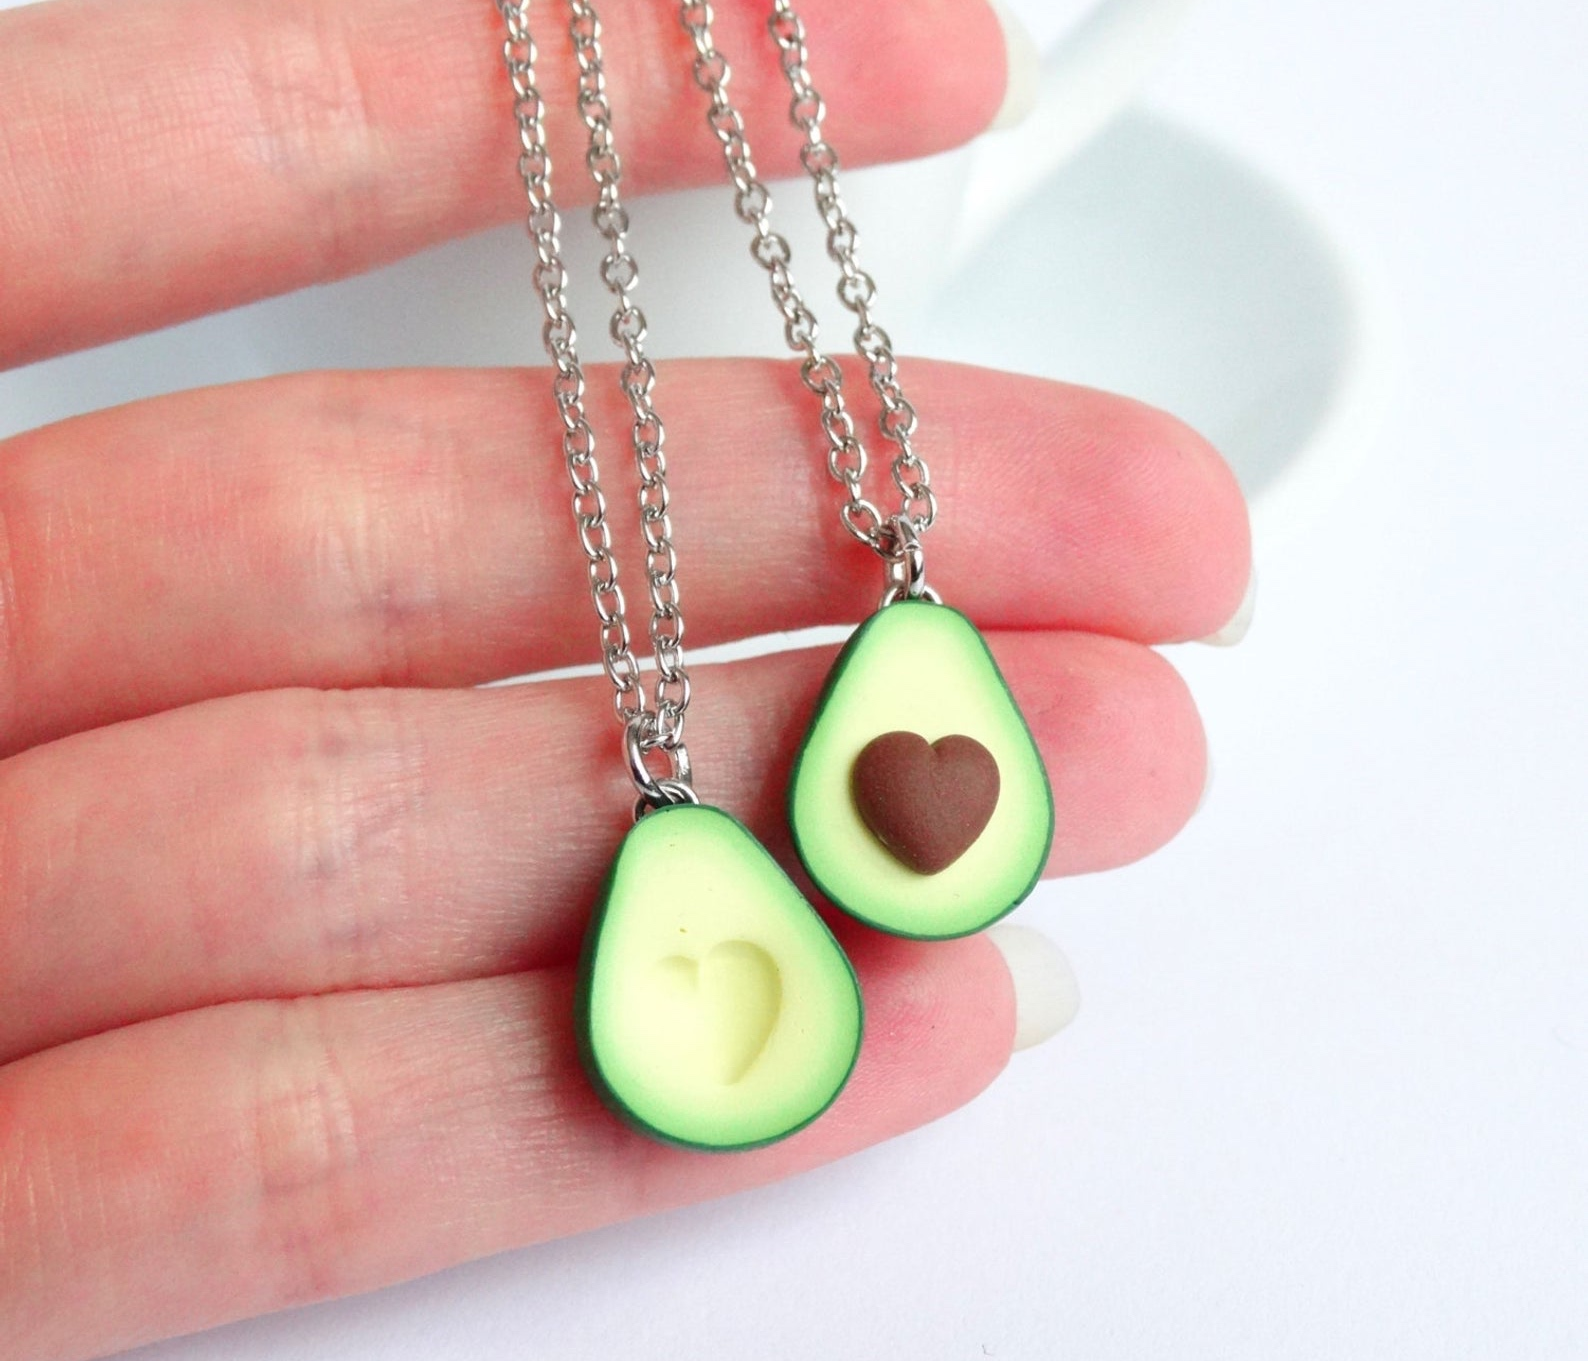 Green Avocado BFF Friendship Necklace Pendant By Shiny Stuff Creations